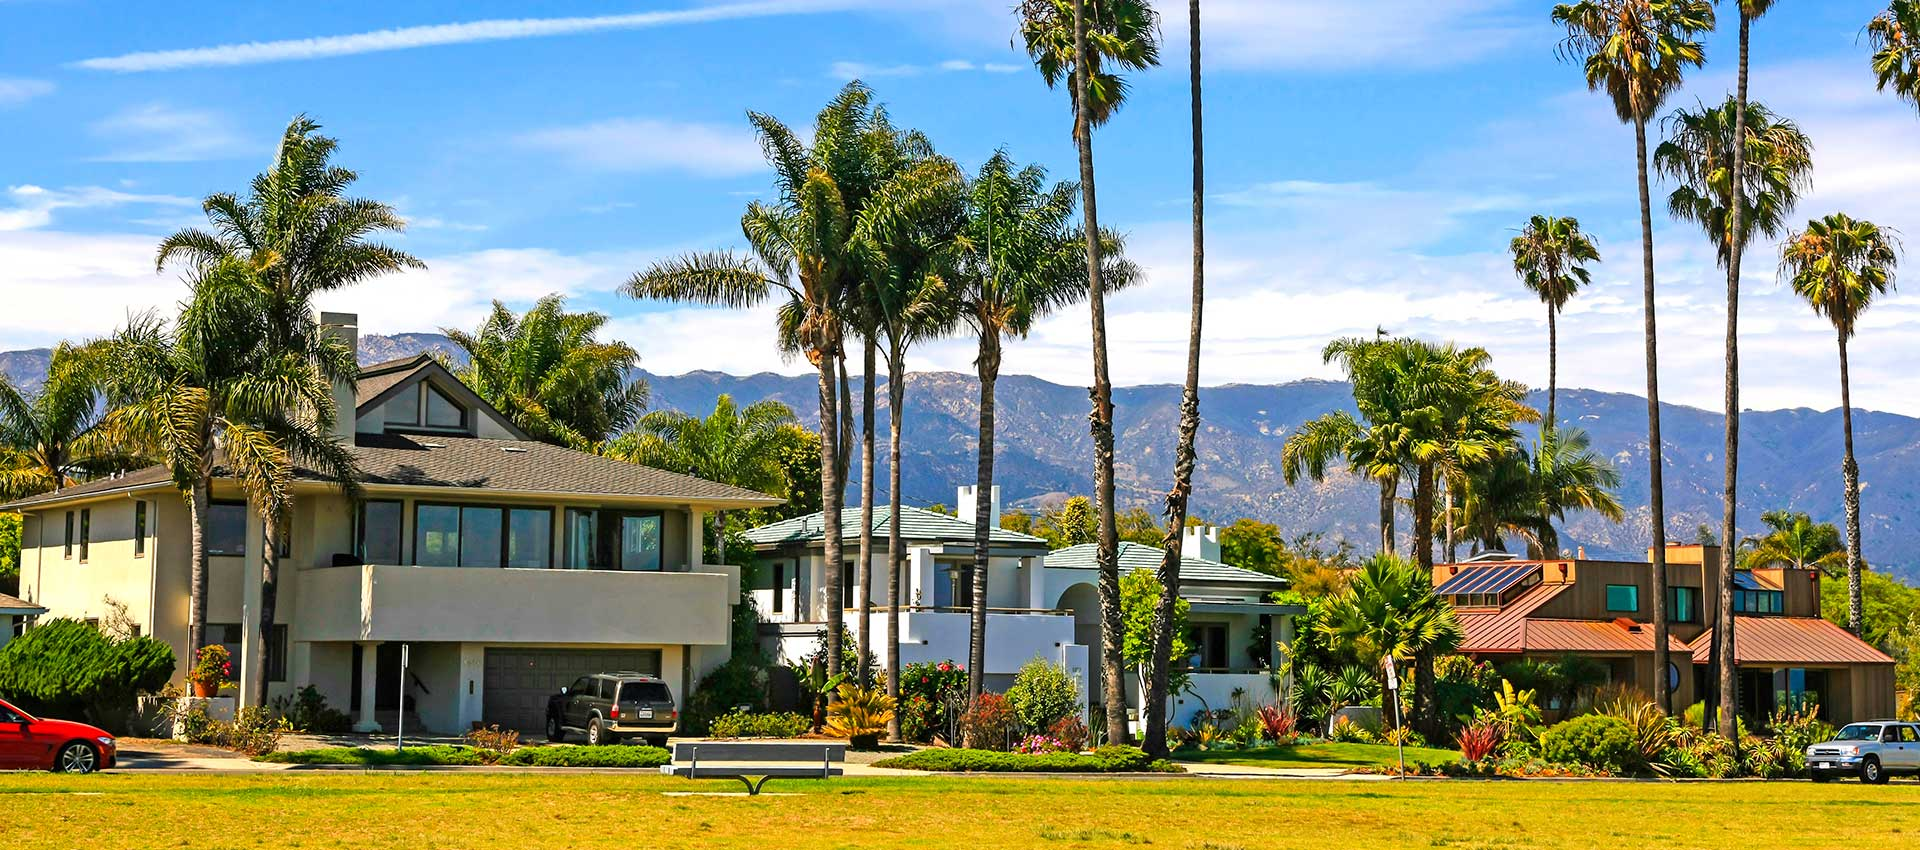 Santa Barbara Real Estate